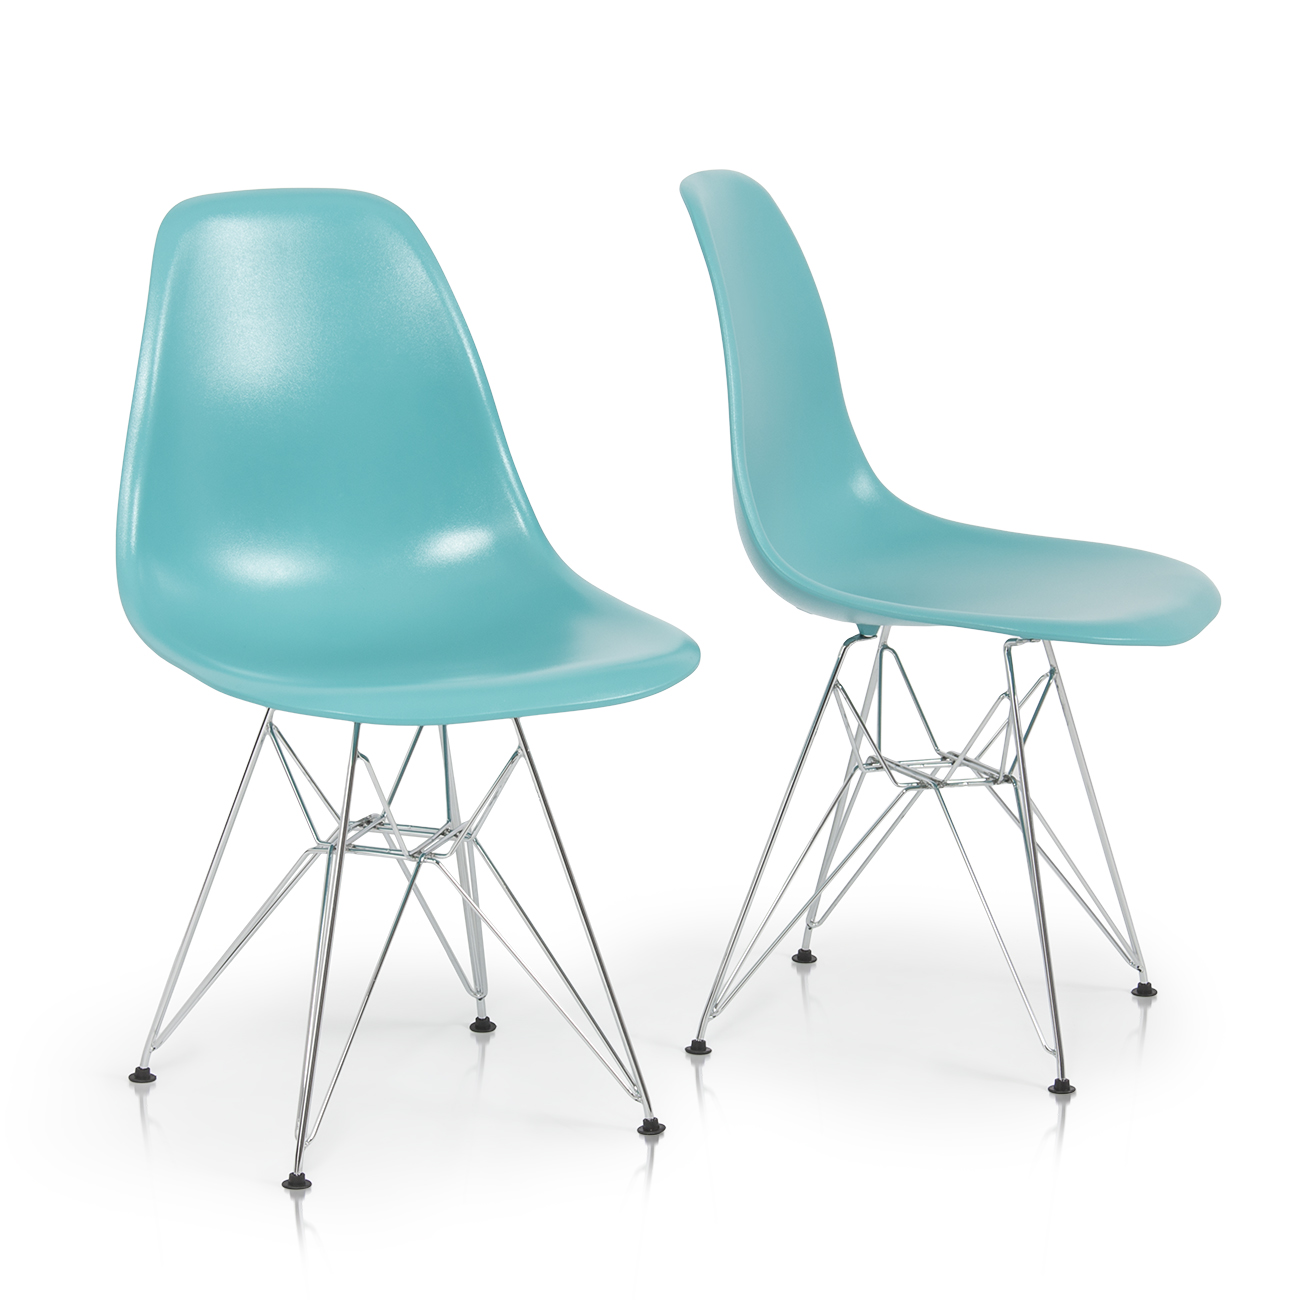 2x eames style dsw modern eiffel side chair molded abs plastic chairs